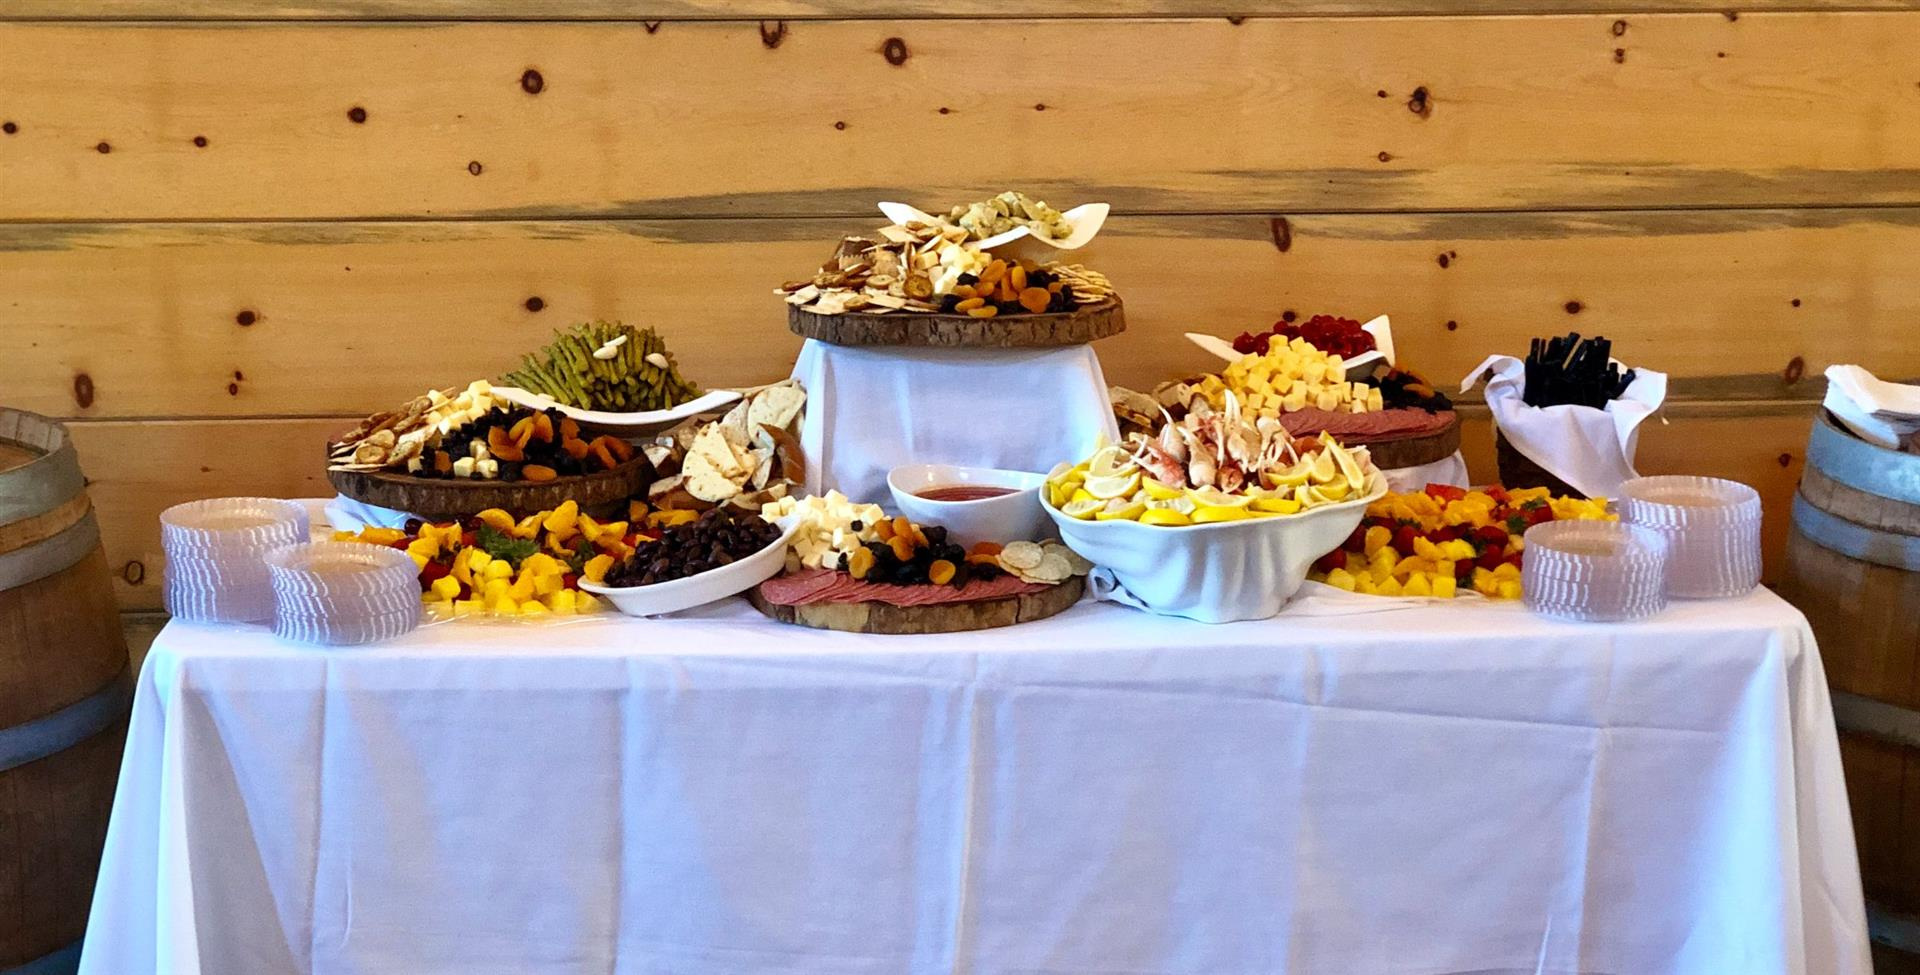 hors d'oeuvres station